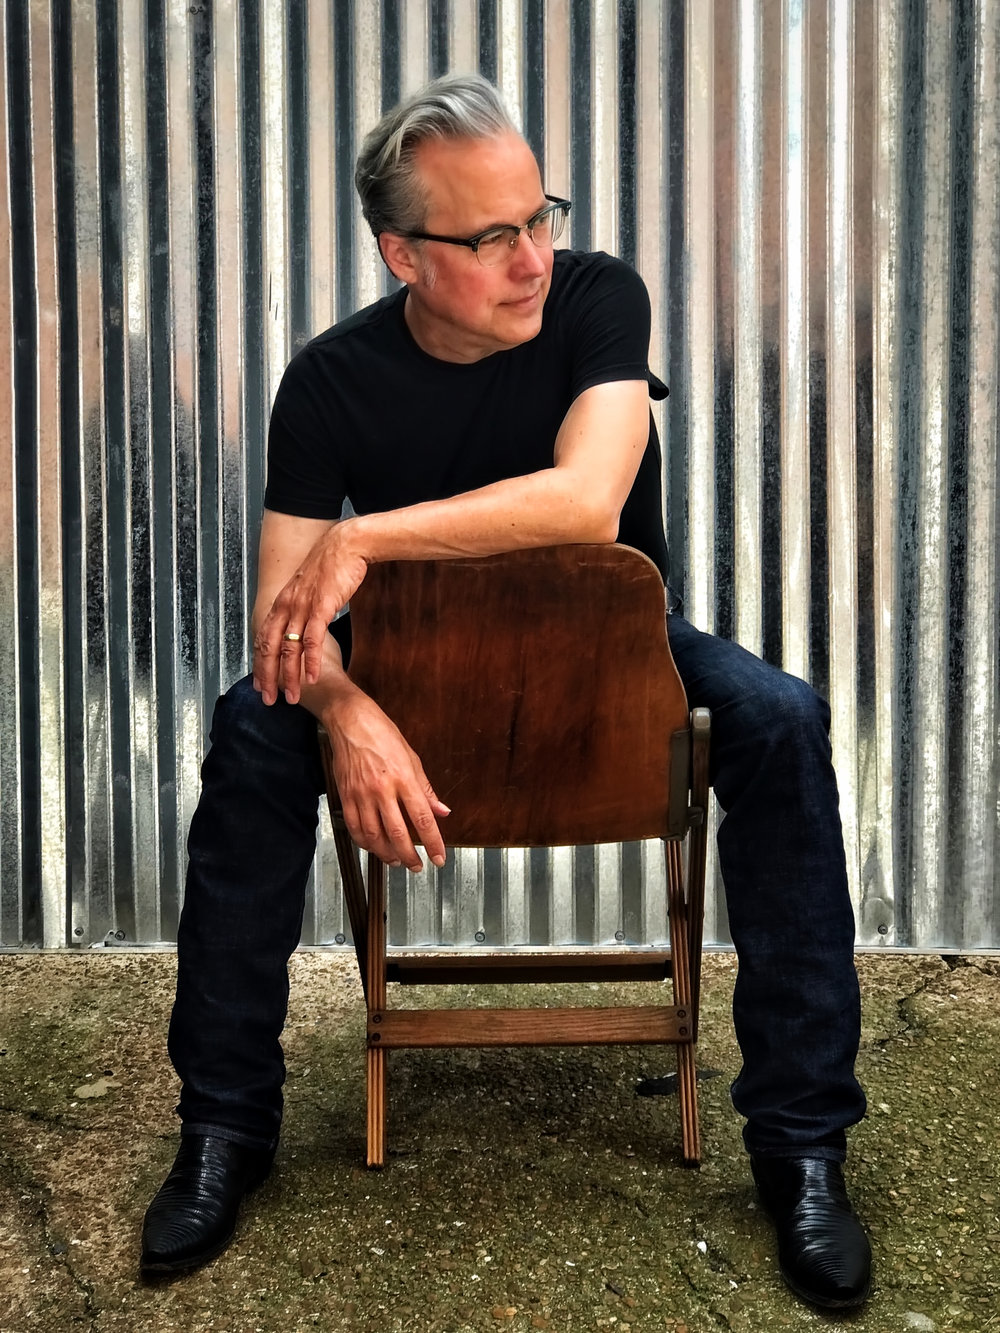 4. Radney Foster - 11/16 with Bobby Houck and Finnegan Bell at Woolfe Street Playhouse